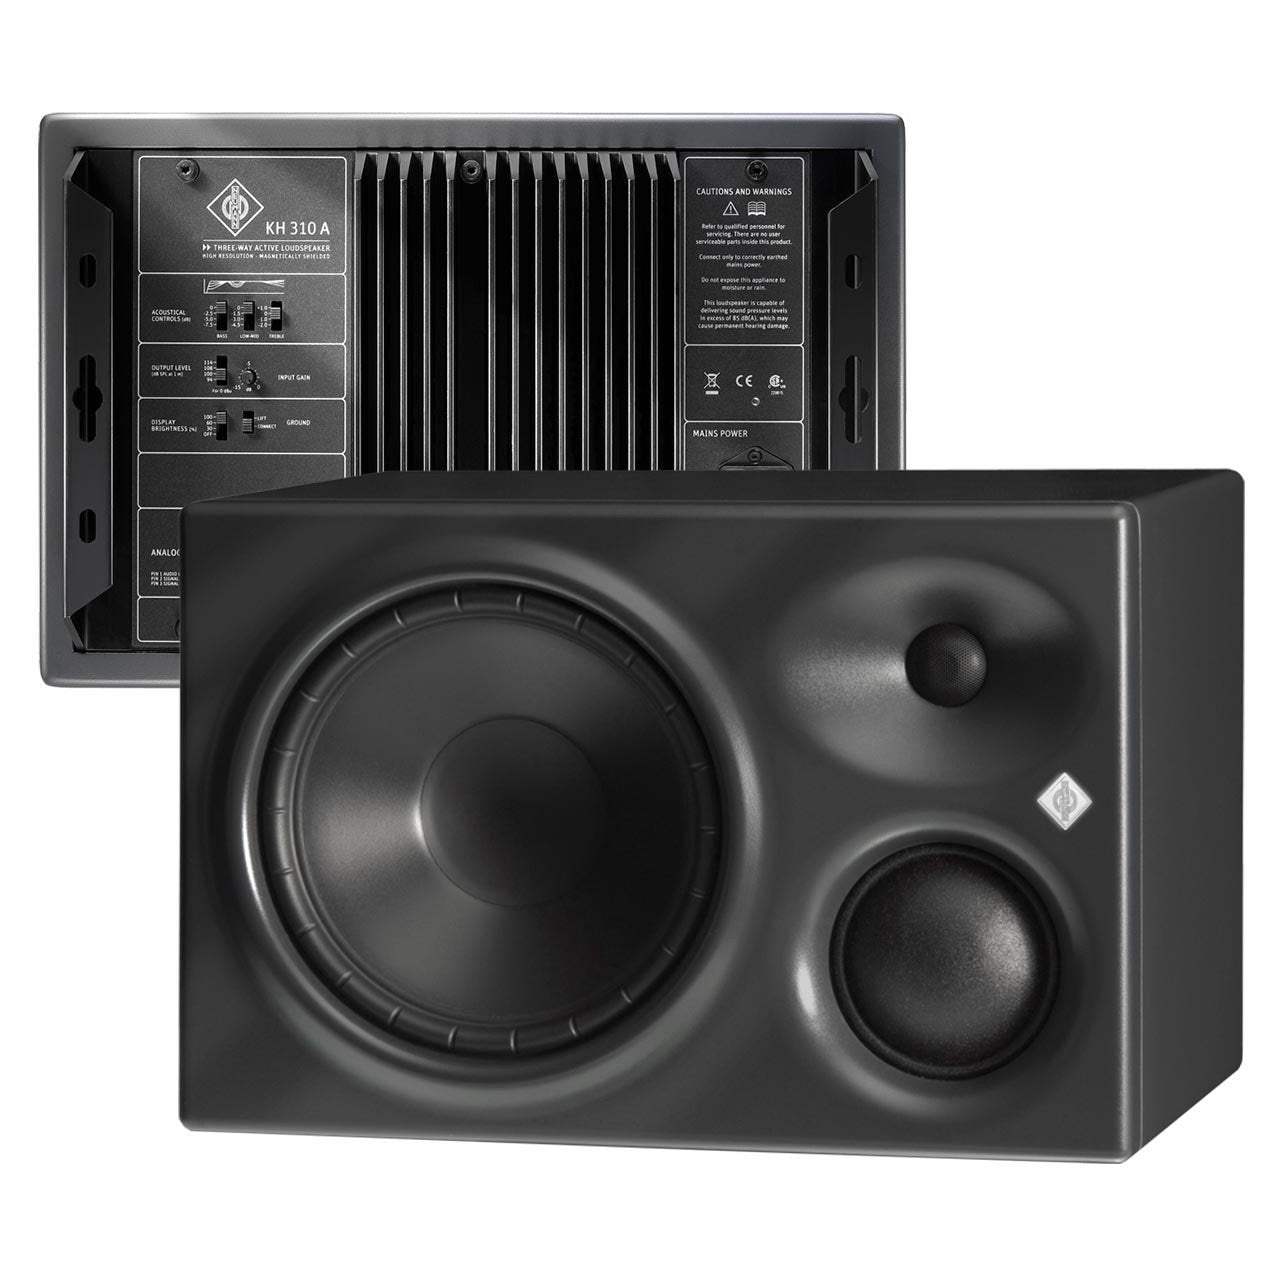 Active Studio Monitors - Neumann KH 310 A - Active Studio Monitor (PAIR)